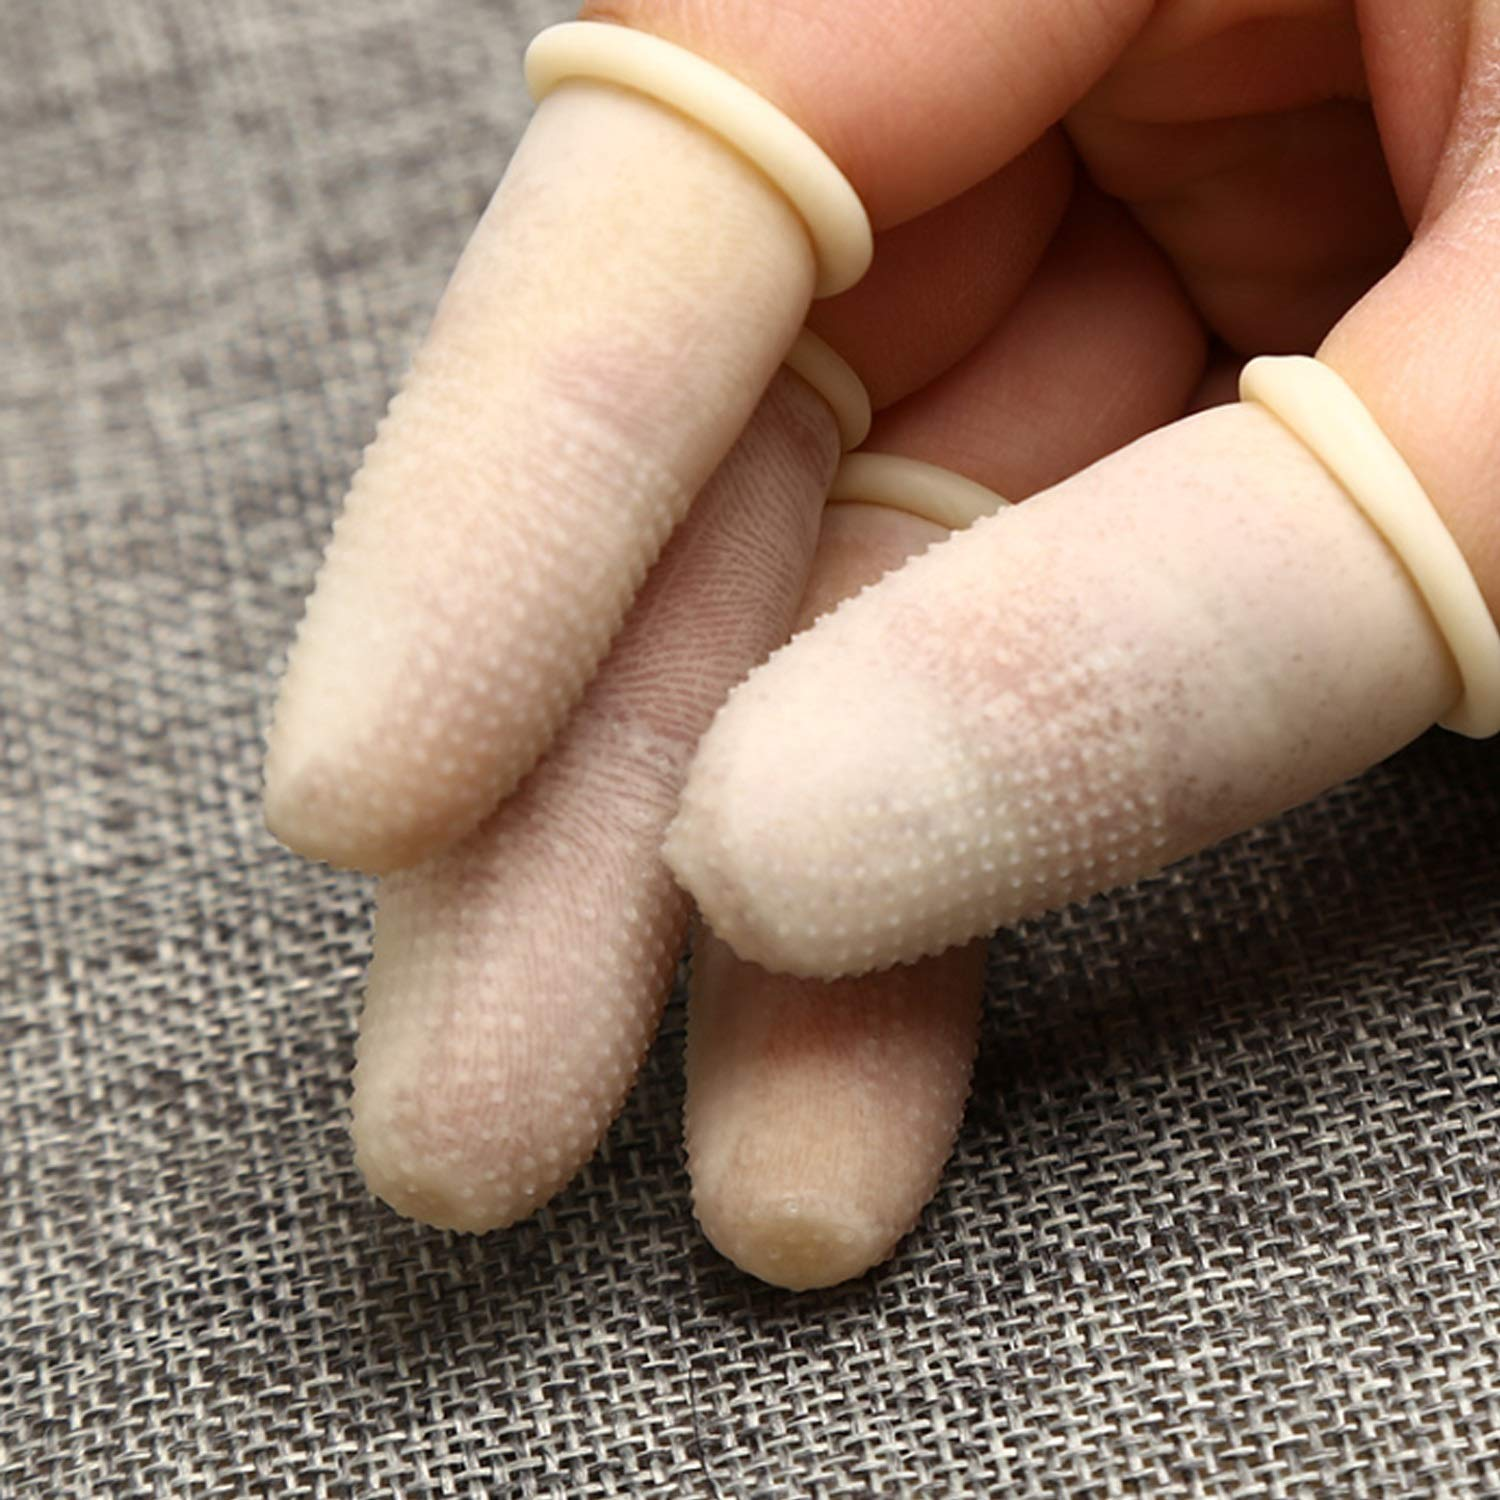 LING--Work gloves 100 PCS Disposable Latex Finger Cots,Anti-Static Rubber Fingertips Nitril (Color : White, Size : M-Three Packs)